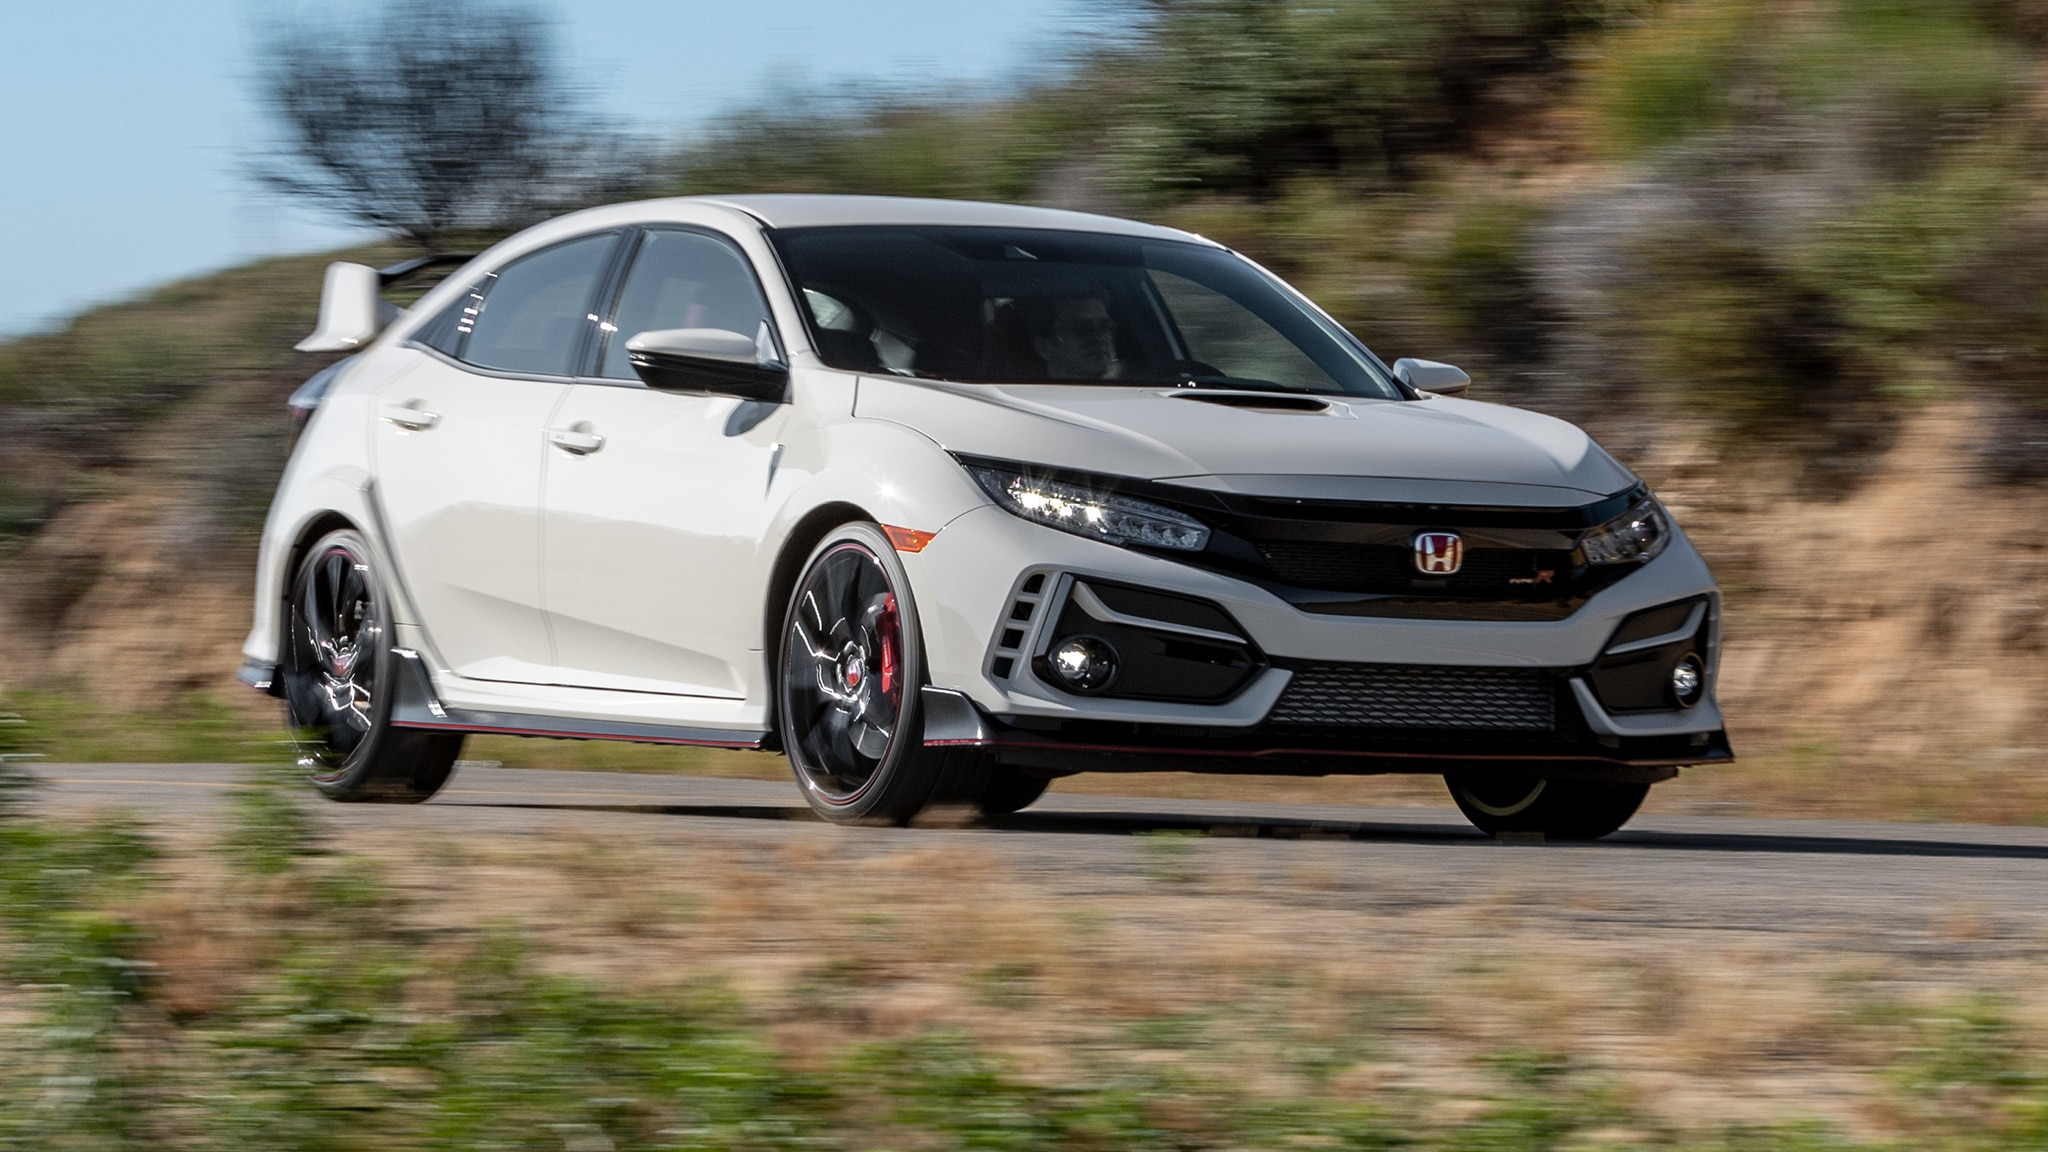 First Drive The New 2020 Honda Civic Type R Gets Even Better Mostly